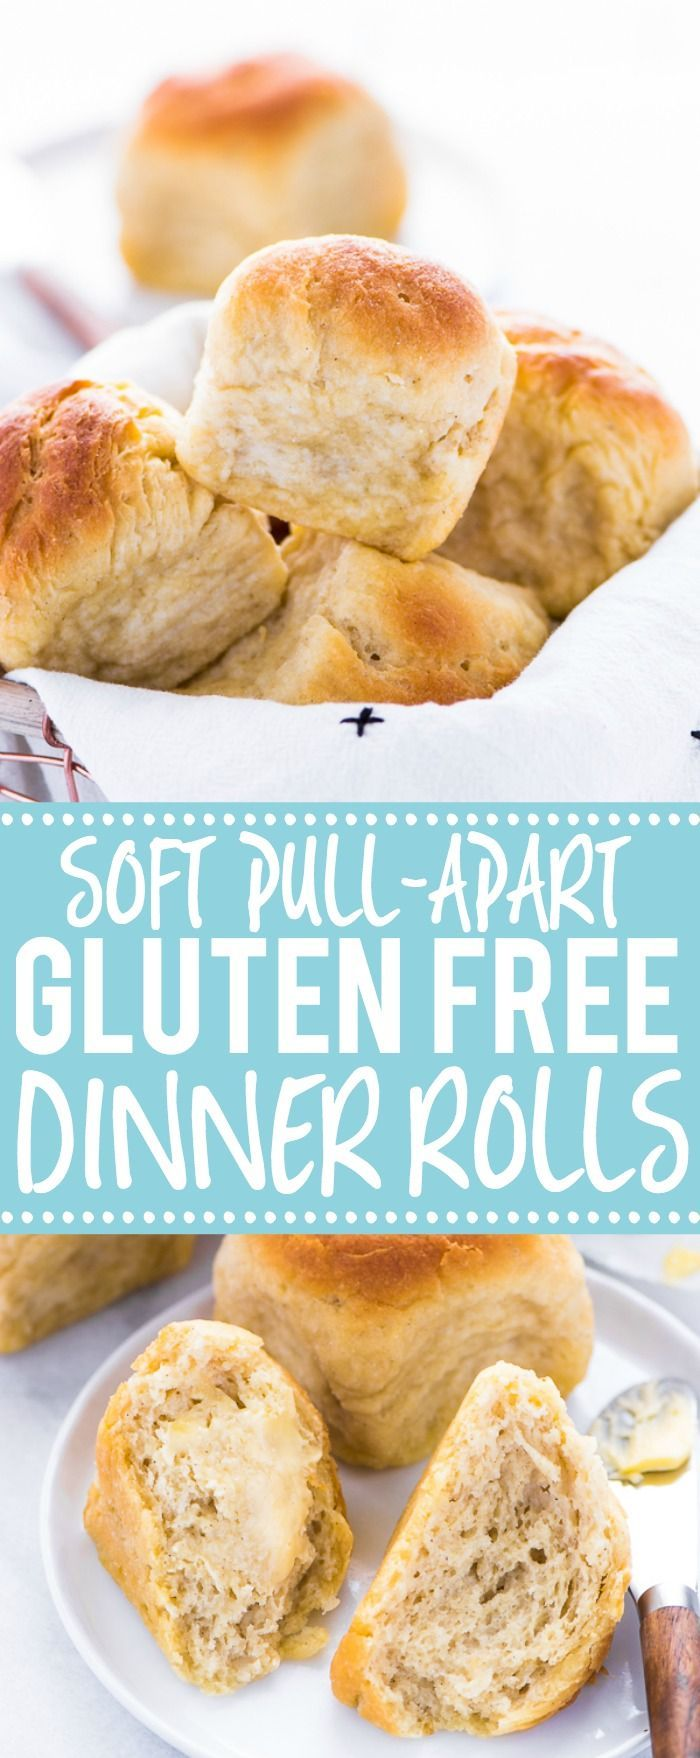 These gluten free dinner rolls are soft with a nice chew to it - just like regular wheat rolls! If you've been missing real dinner rolls, try this recipe! Plus, they're much easier to make than you'd think! From @whattheforkblog | whattheforkfoodblog.com | gluten free bread recipes | gluten free rolls | yeast rolls | gluten free yeast rolls | gluten free bread recipes #glutenfree #dinnerrolls #yeastrolls #glutenfreebaking #easyrecipes #glutenfreerecipes #glutenfreebread #bread #recipes